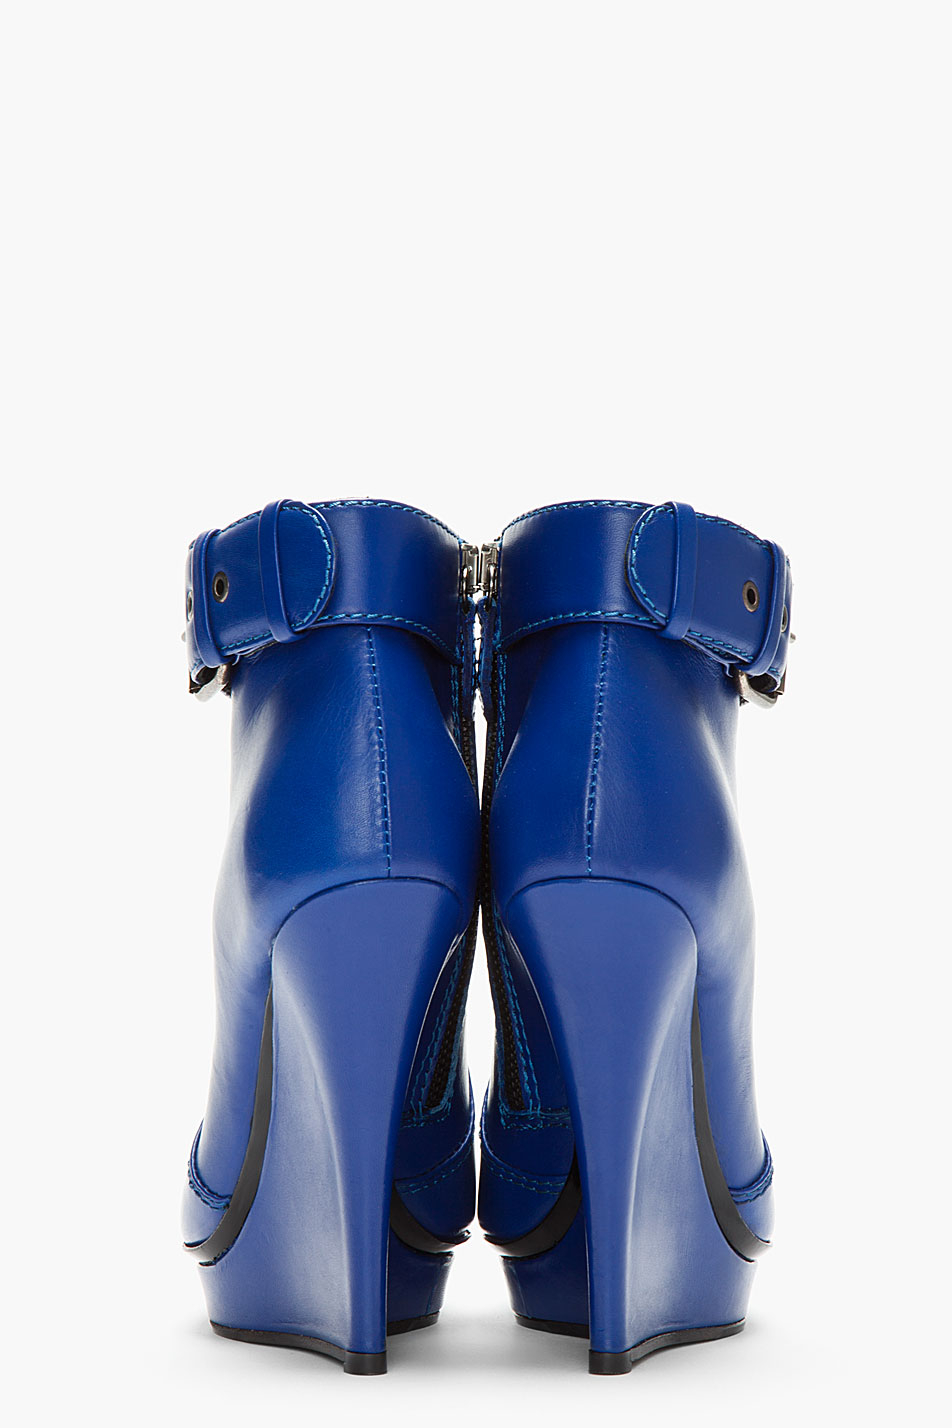 Mcq Blue Leather Slim Wedge Biker Boots In Blue Lyst